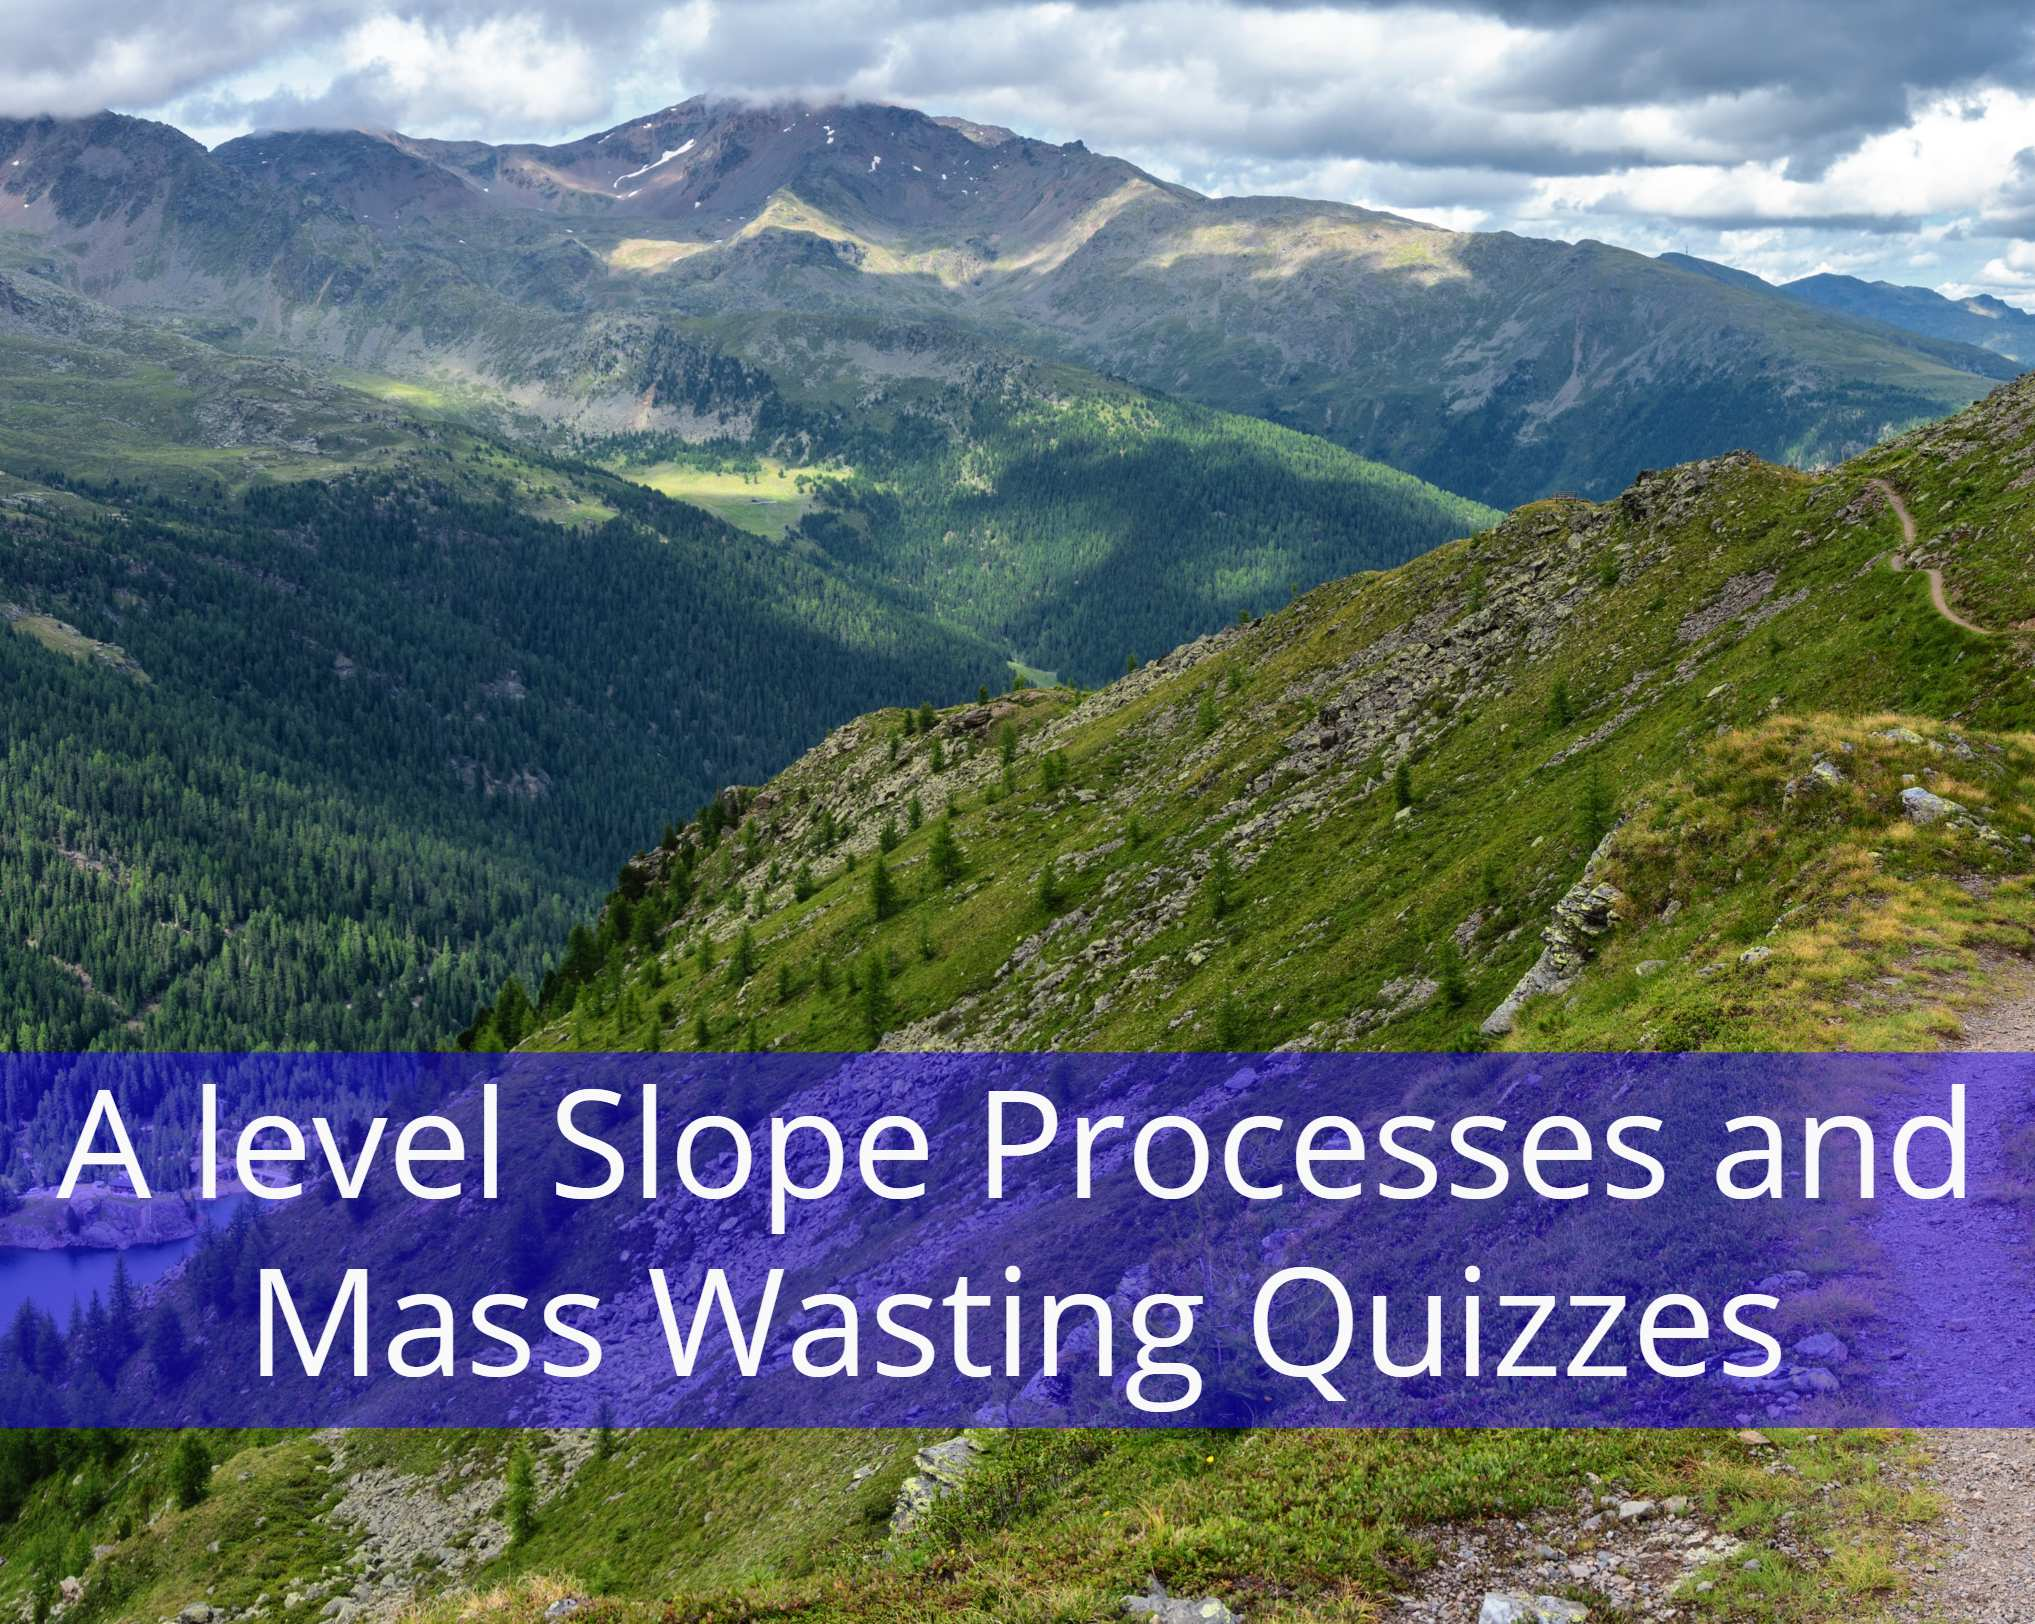 A level Slope Processes and Mass Wasting Quizzes